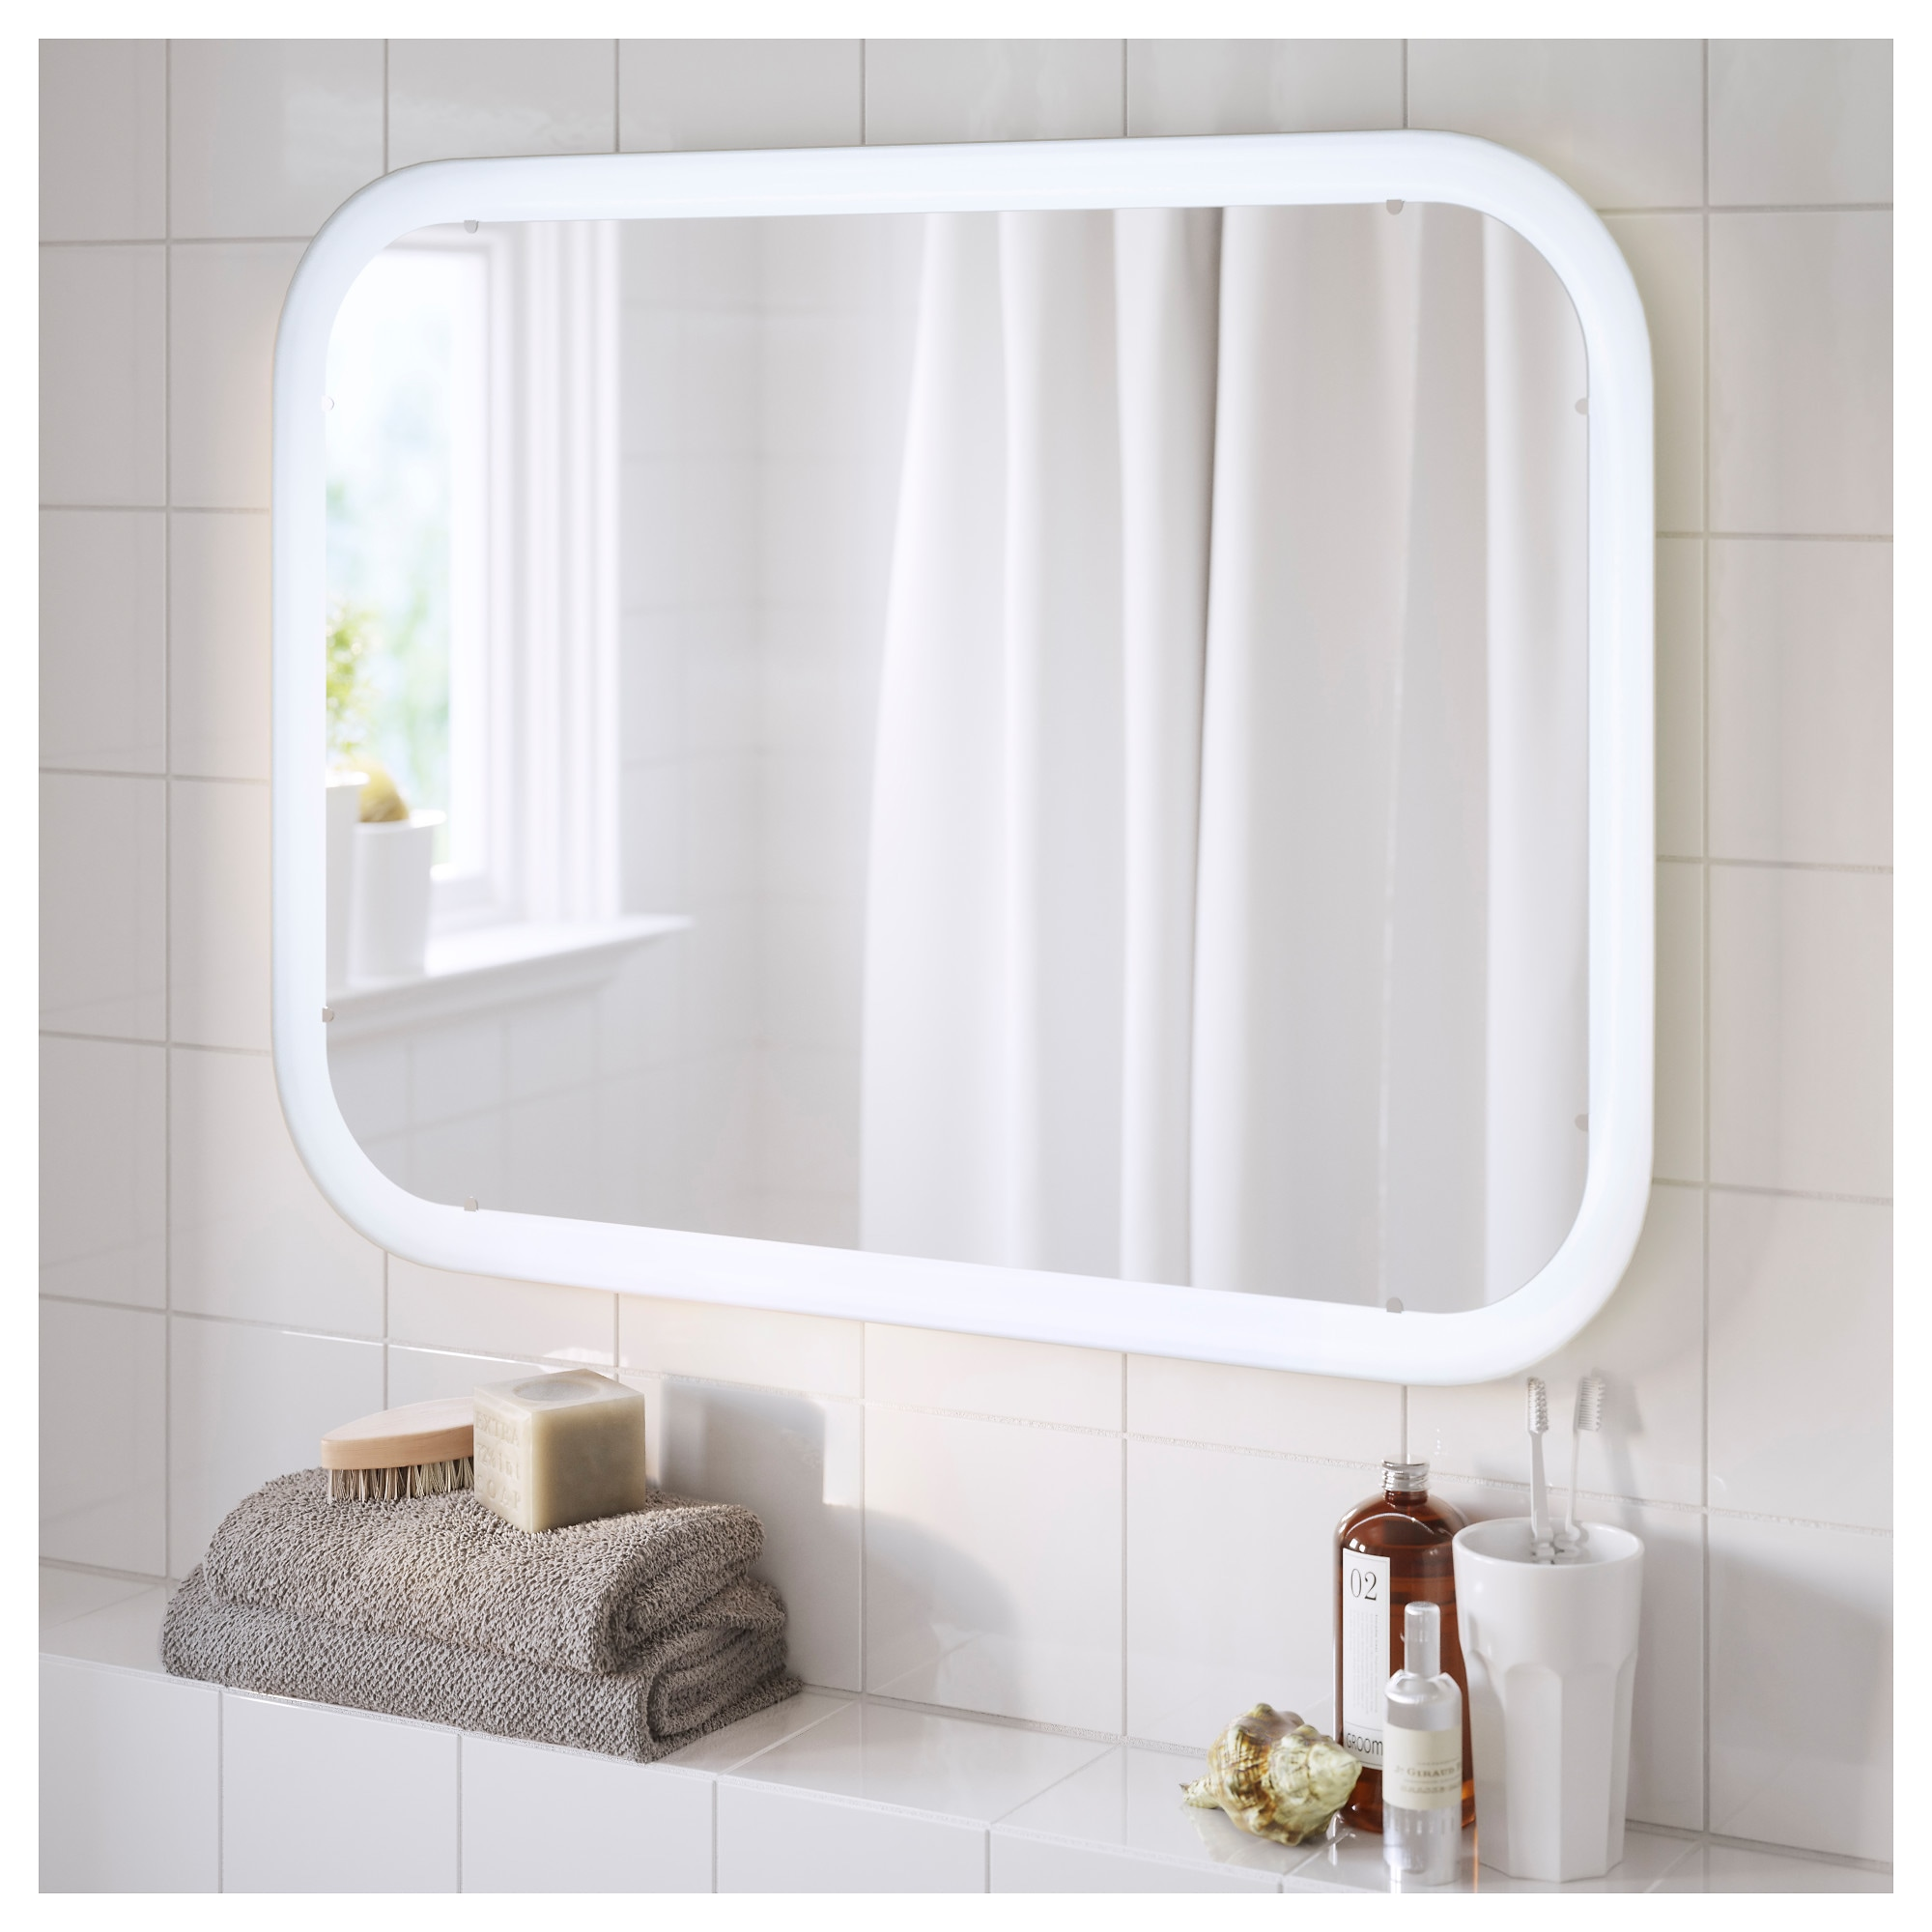 STORJORM Mirror With Built In Light